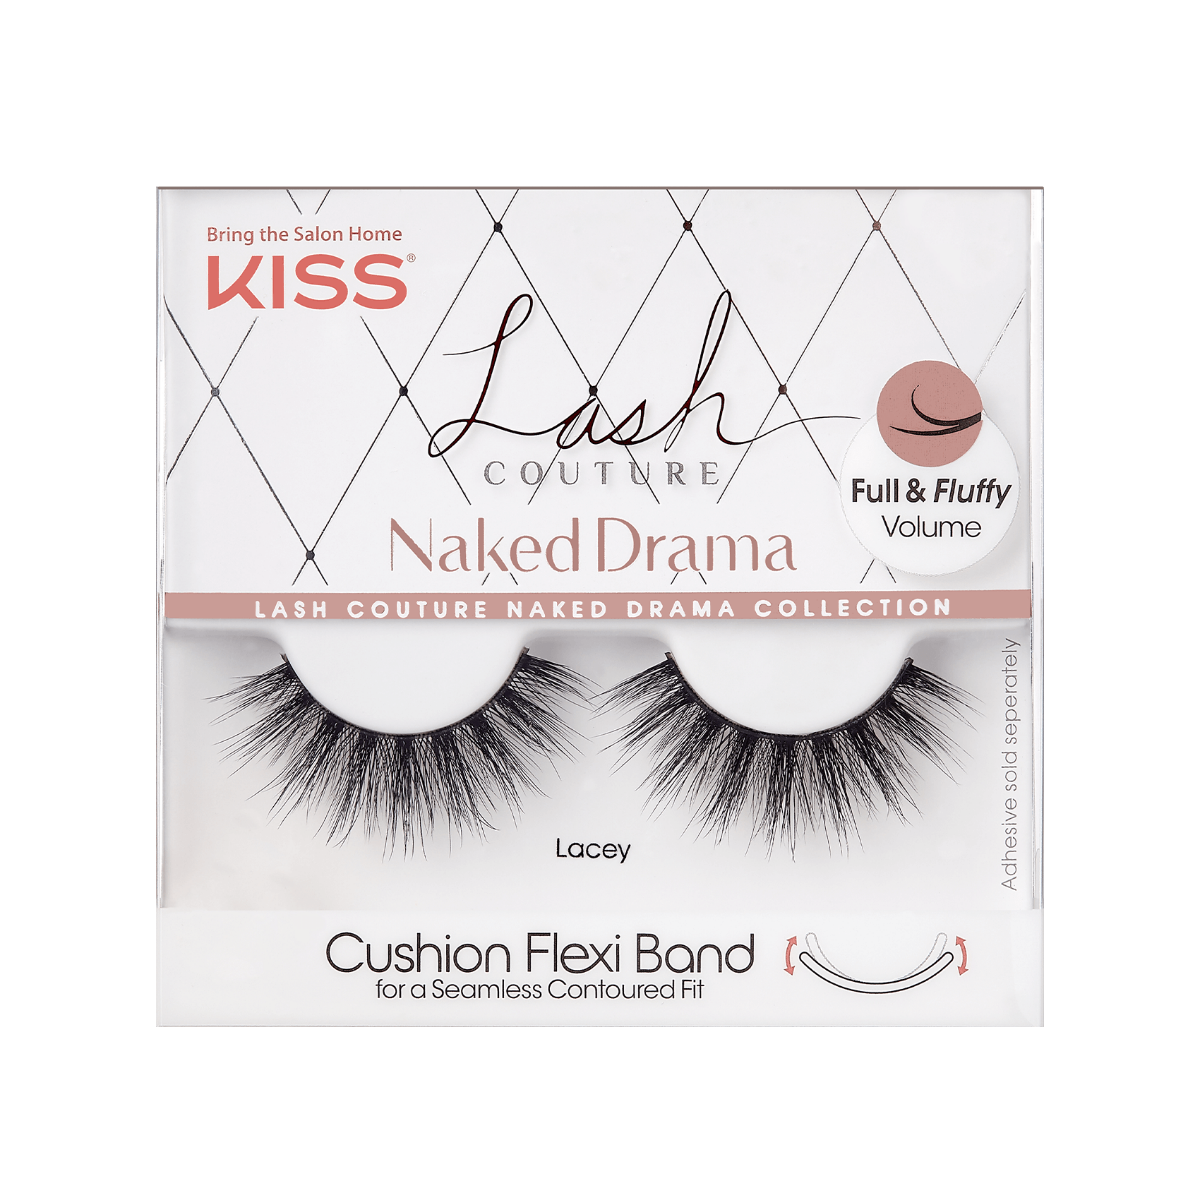 Lacey - KISS Lash Couture Naked Drama